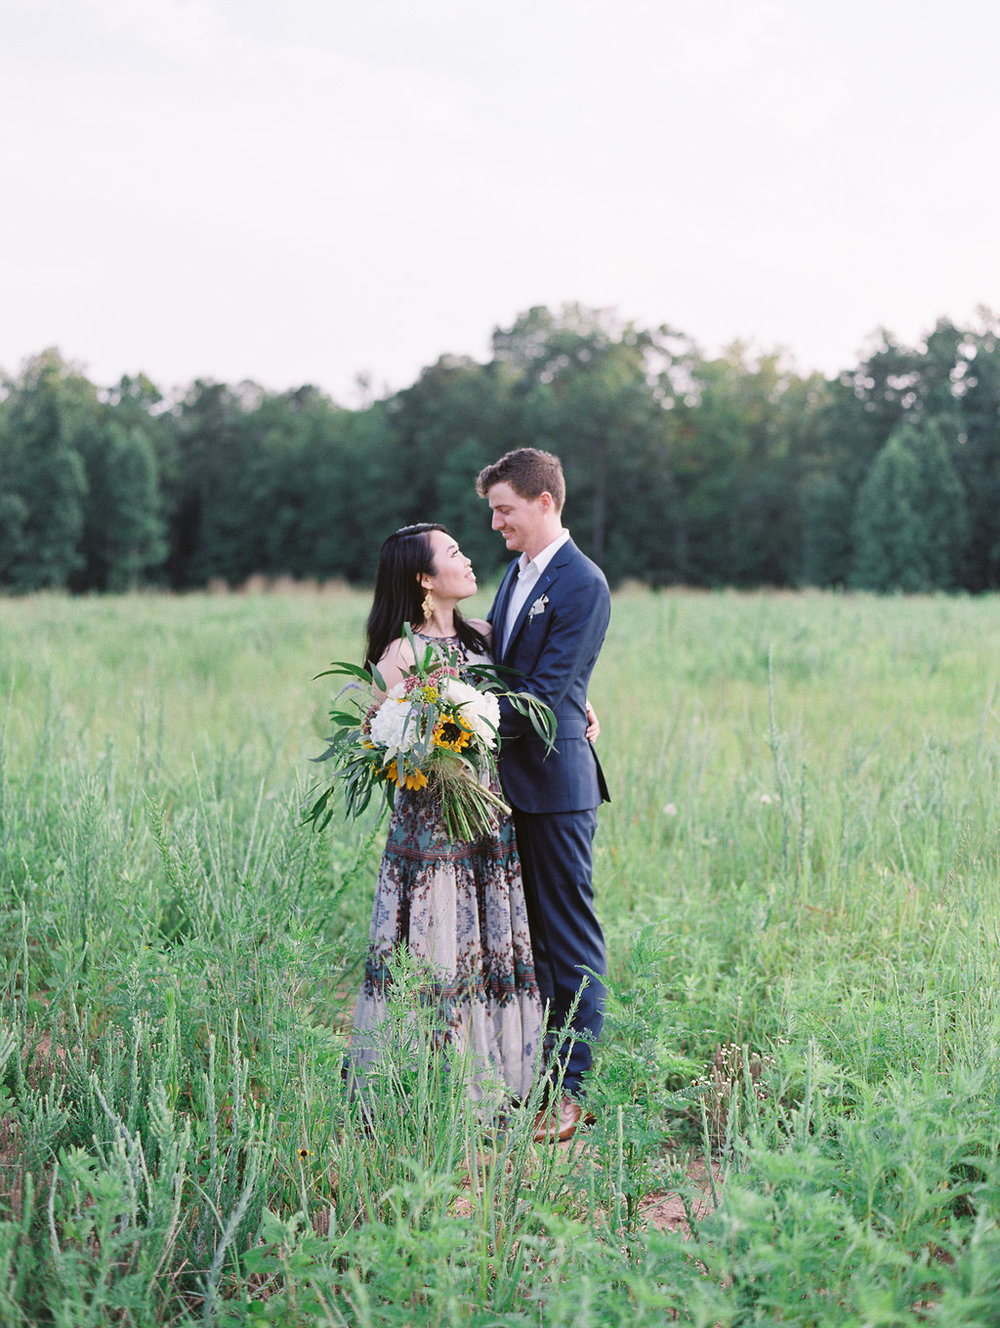 Serenbe-Farms-Engagement-atlanta-wedding-photographer-hannah-forsberg-26.jpg